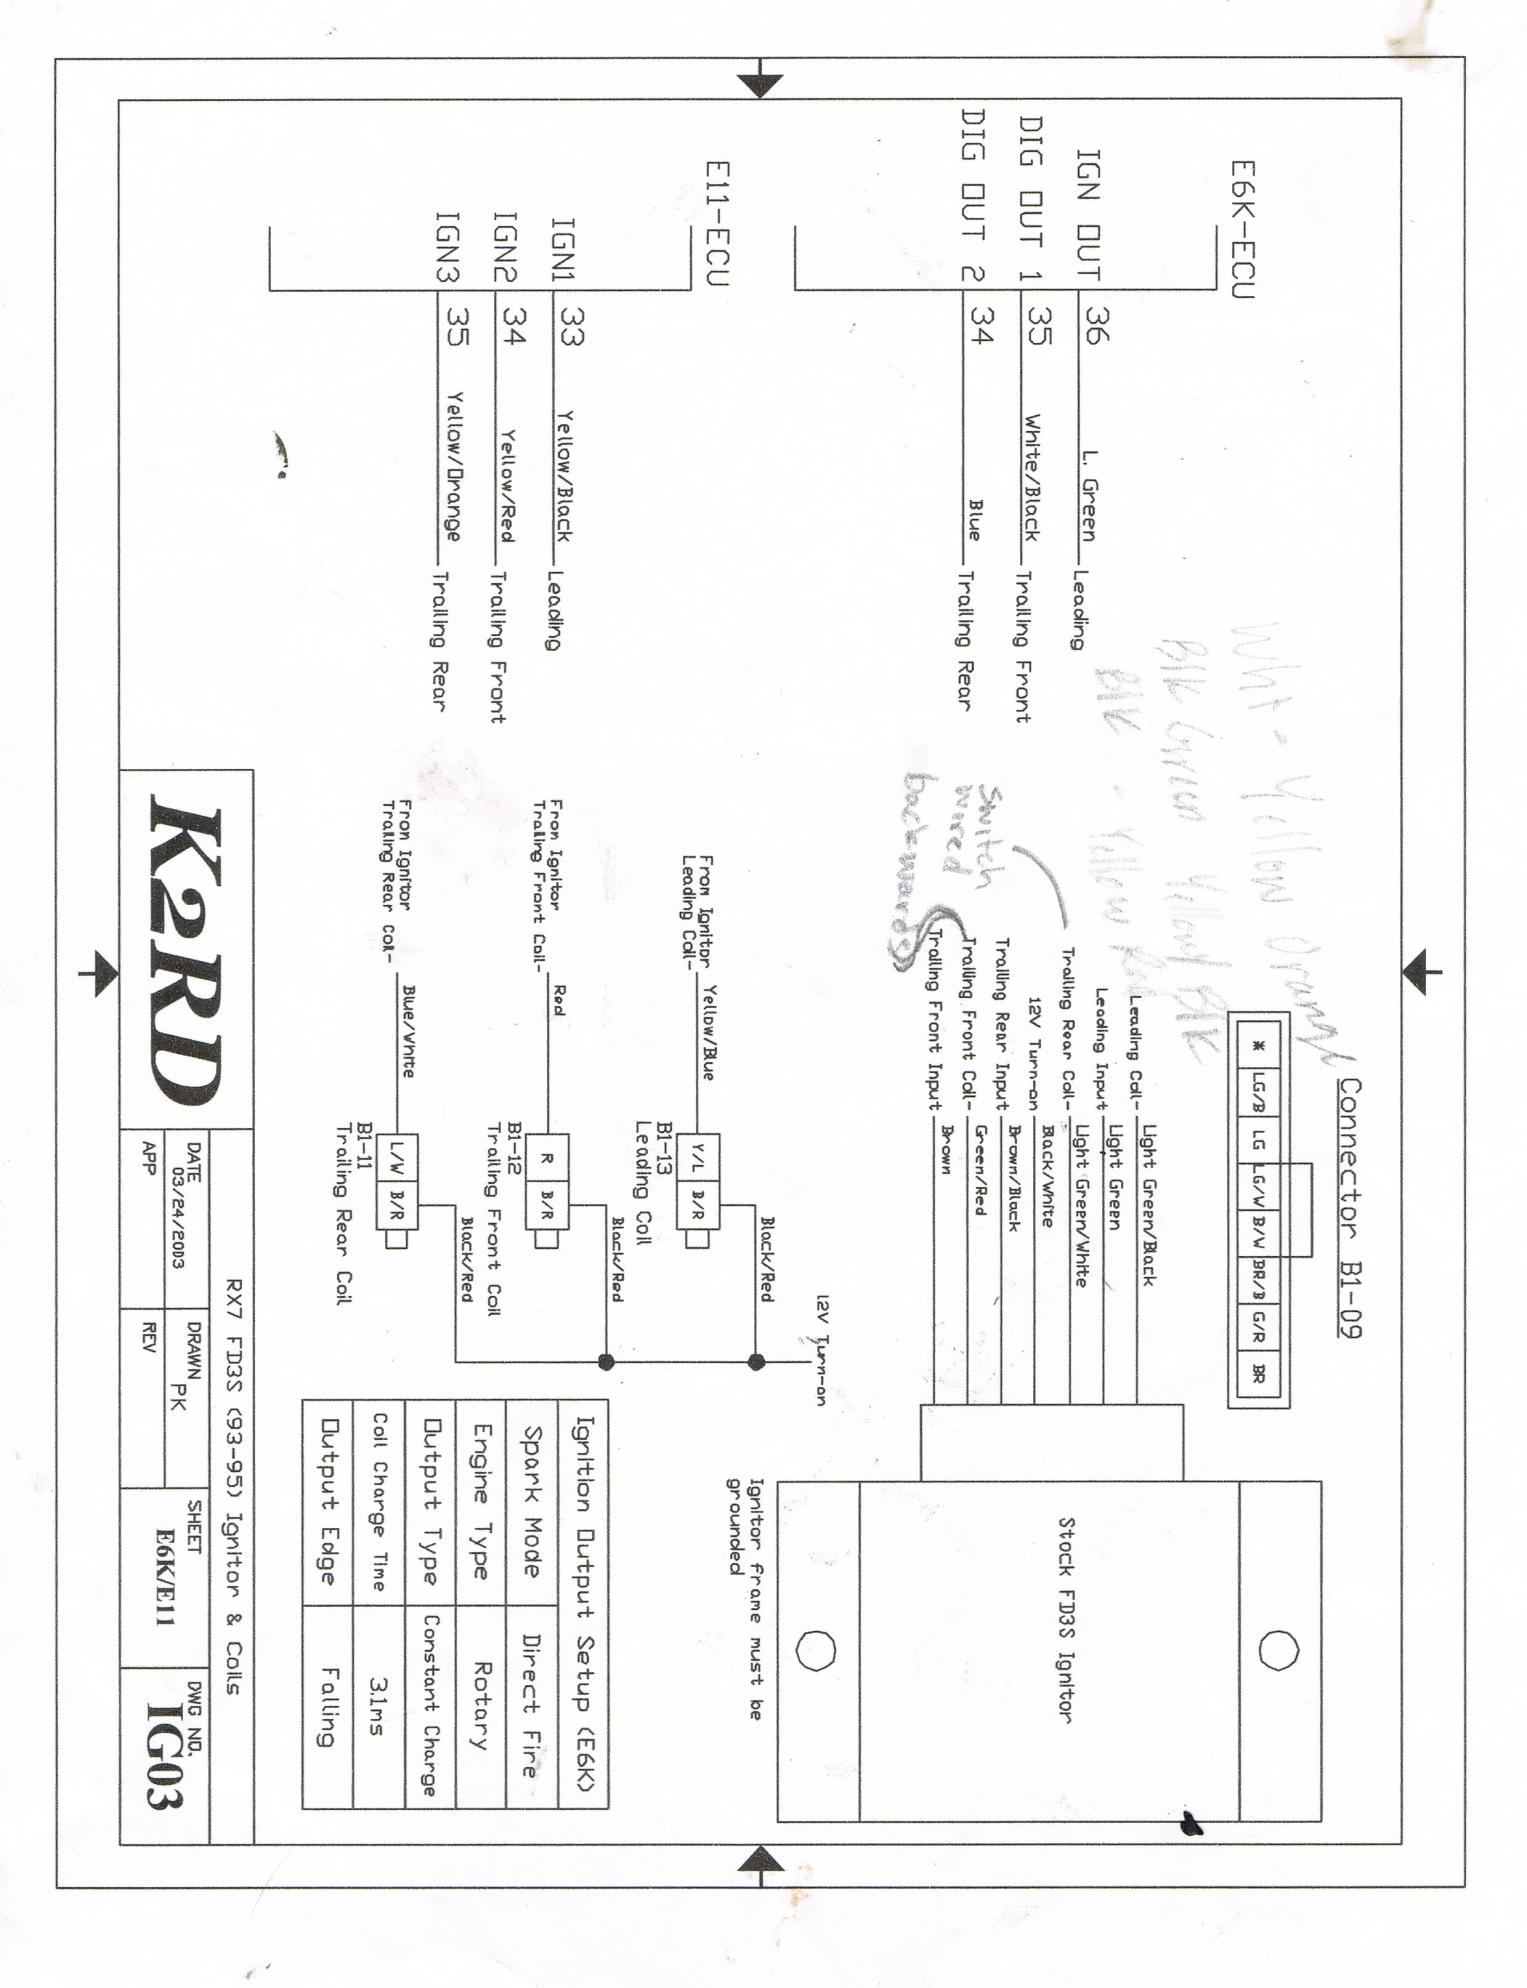 Haltech E8 Wiring Diagram Wnload App